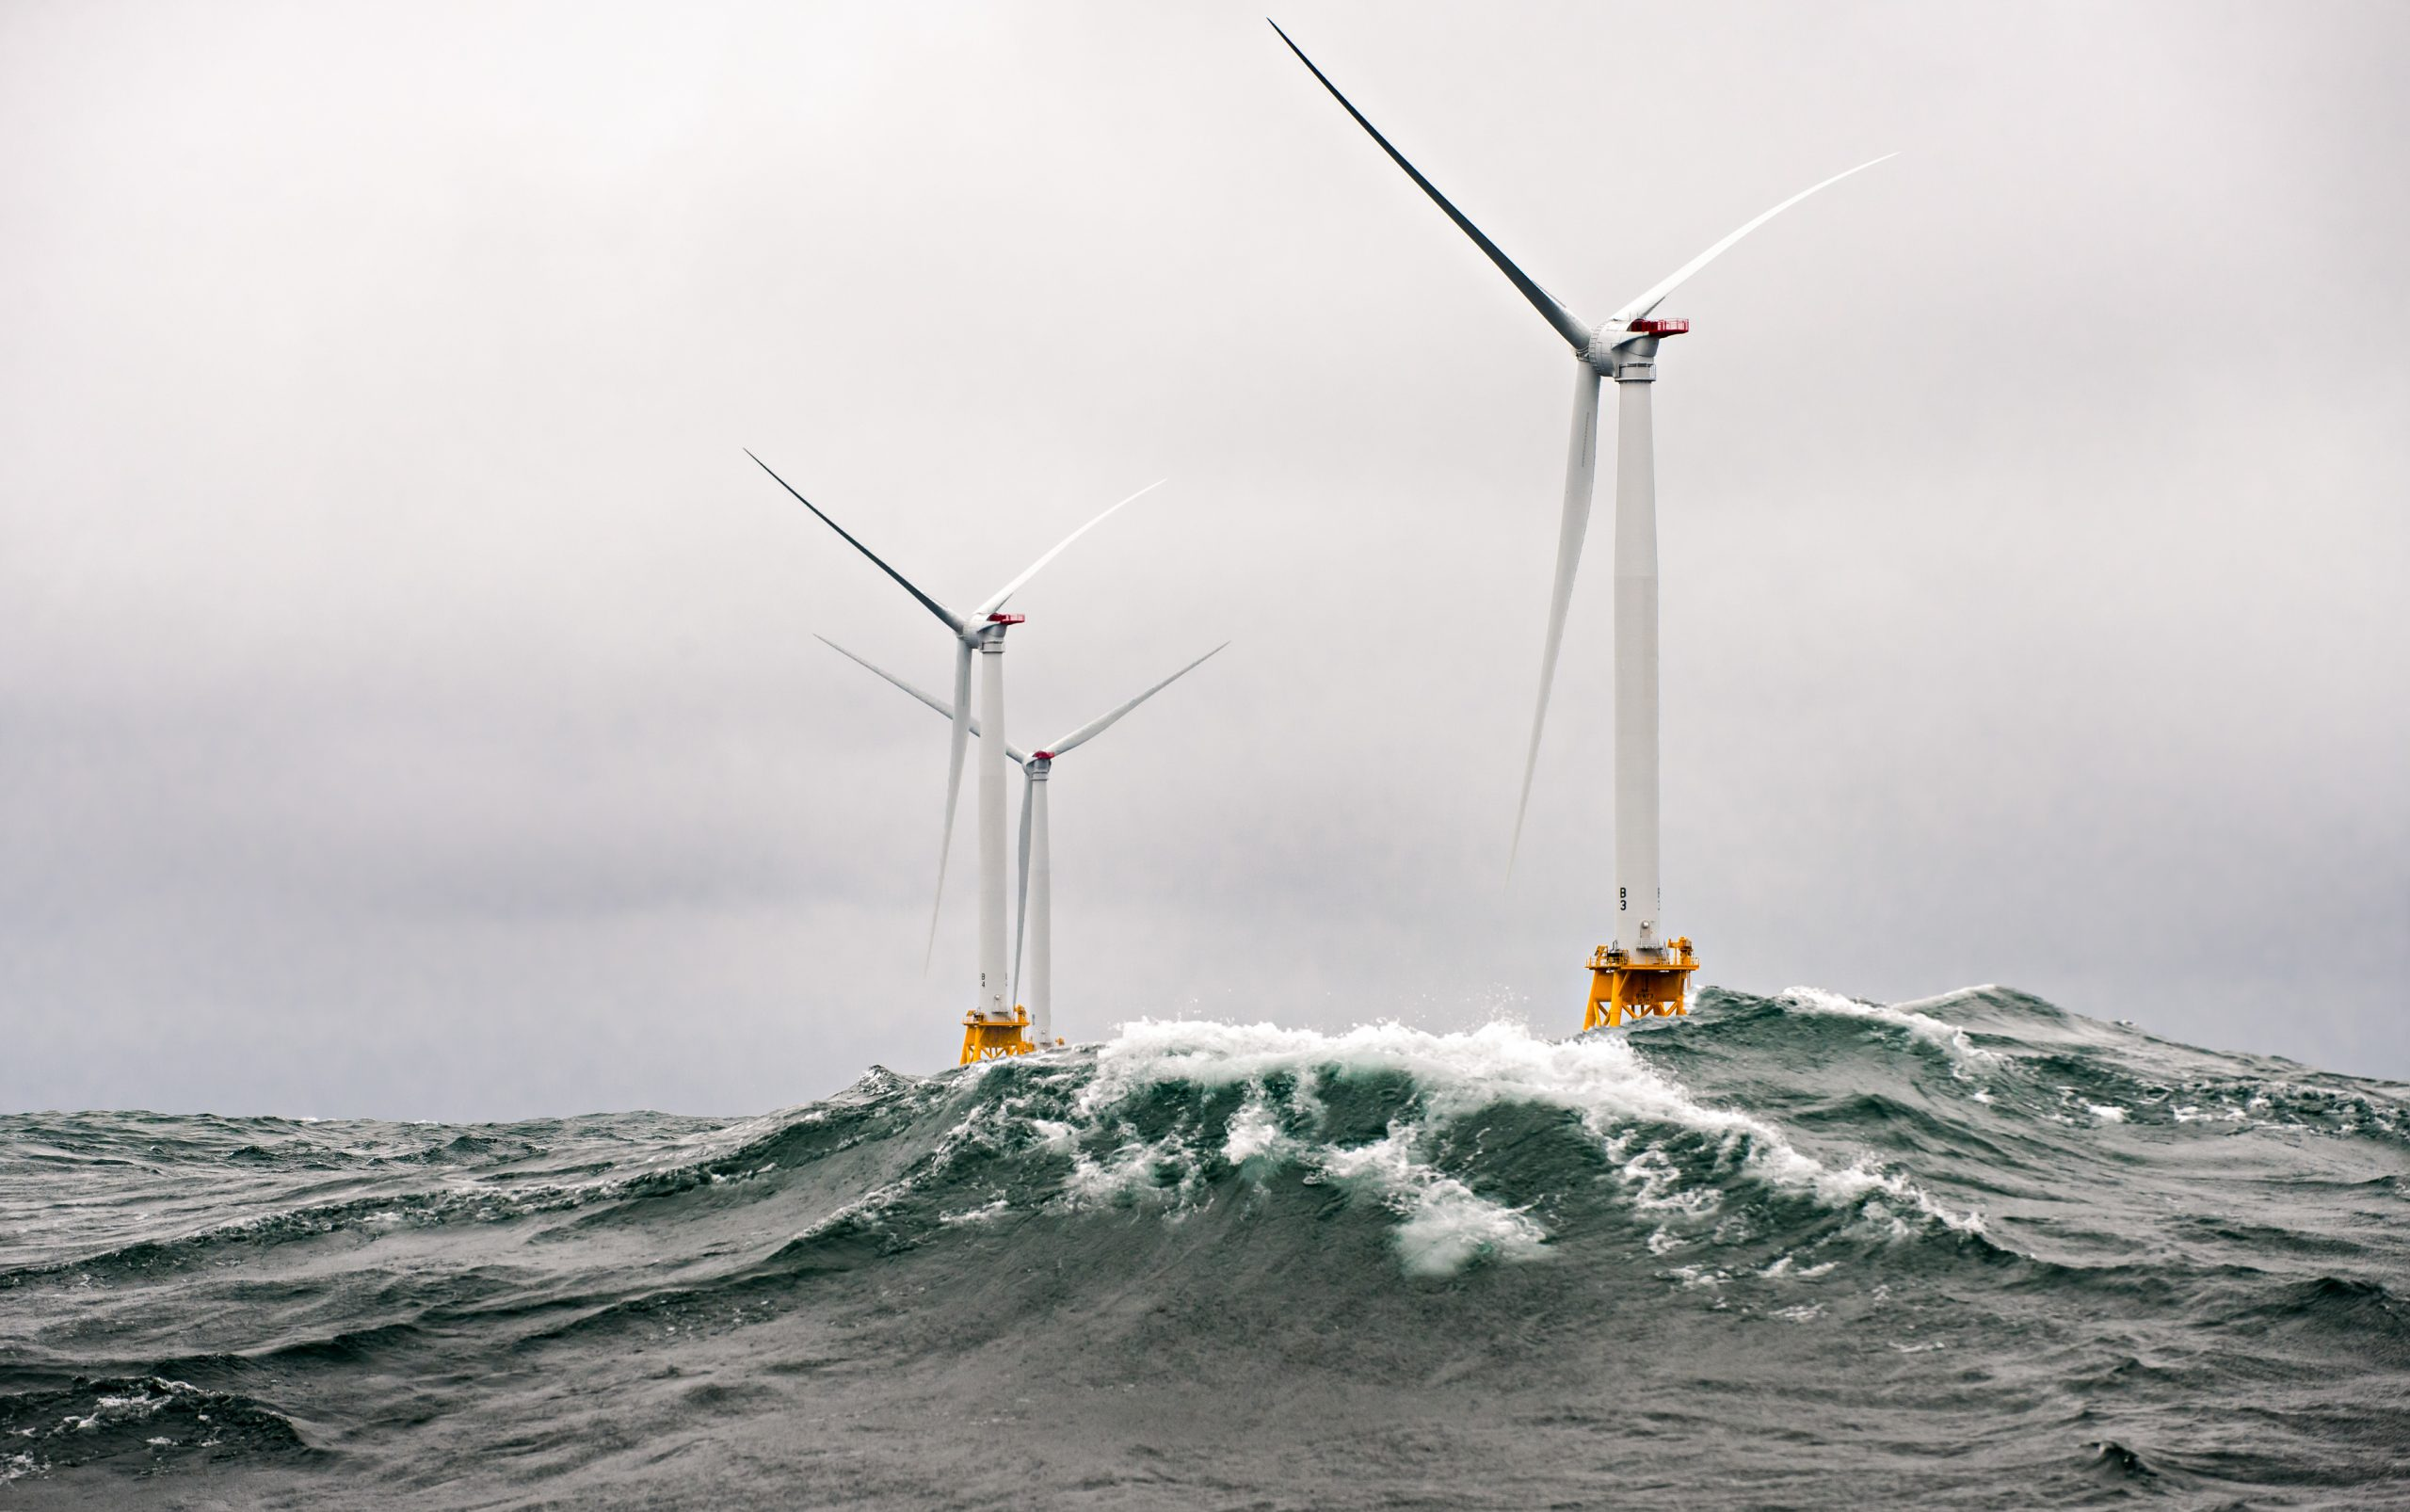 Fishing or Farming: Can Fisheries and Offshore Wind Farms Coexist?